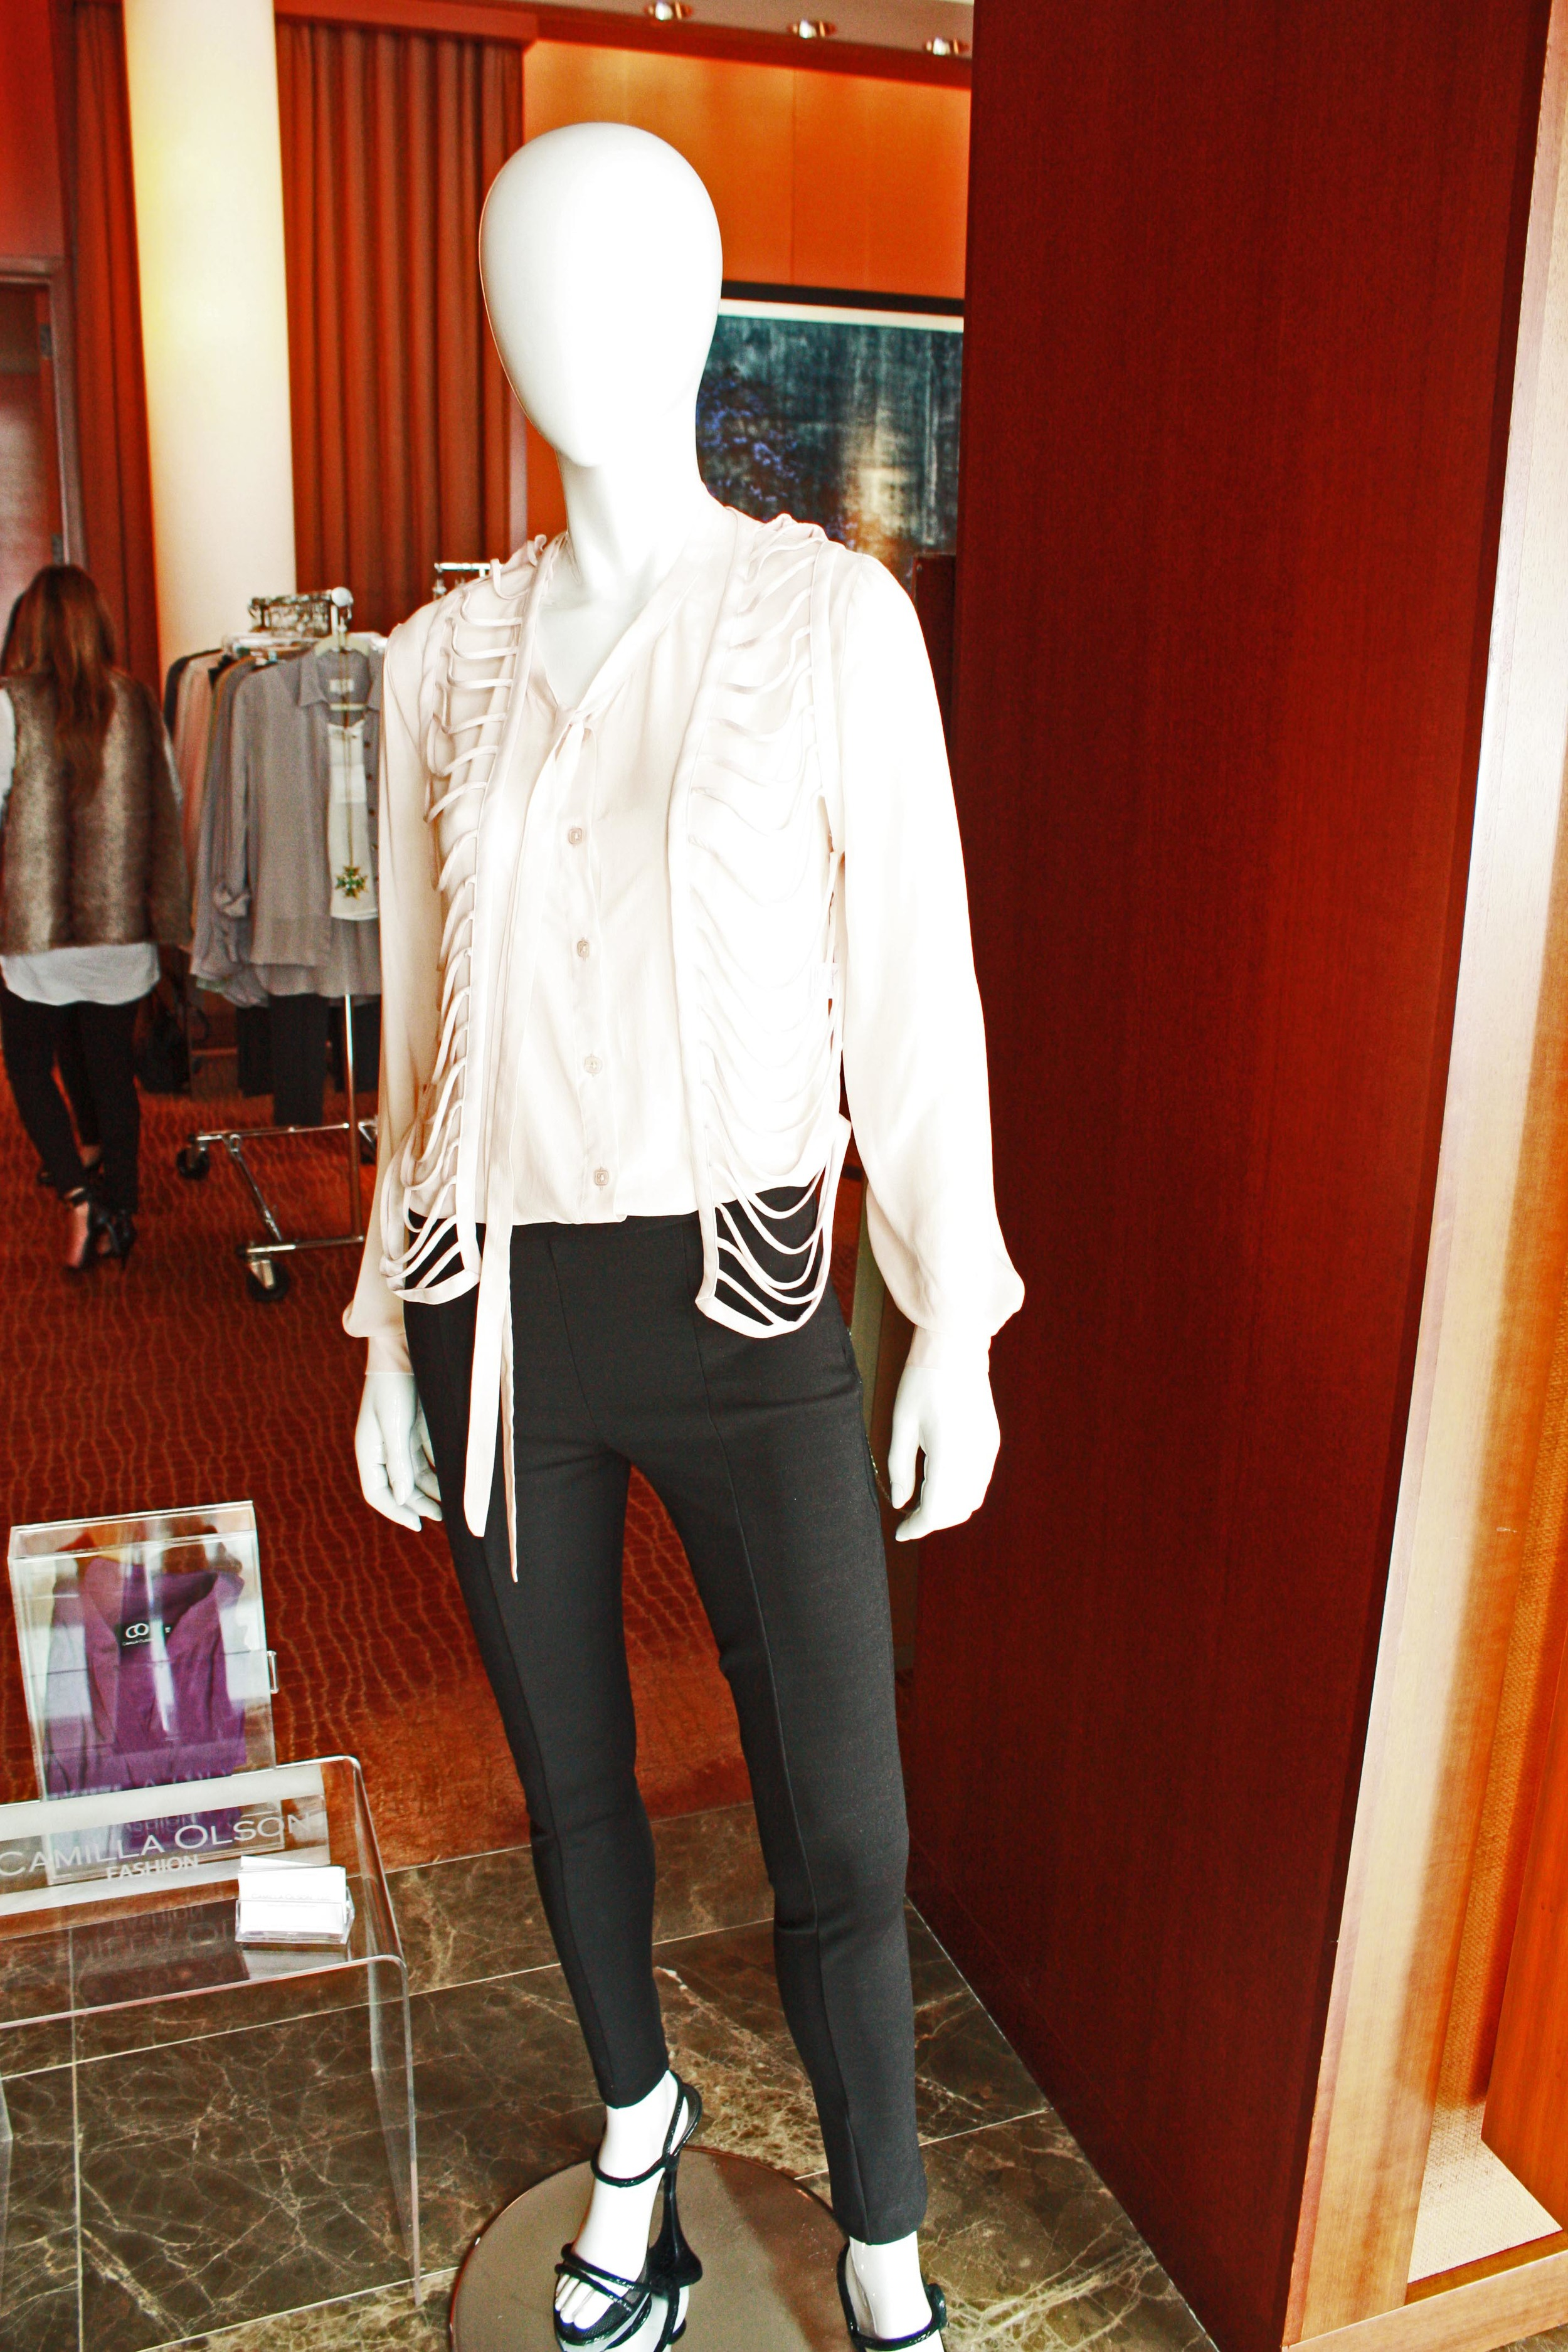 Our mannequins welcomed everyone in the main lobby of the Four Seasons Silicon Valley